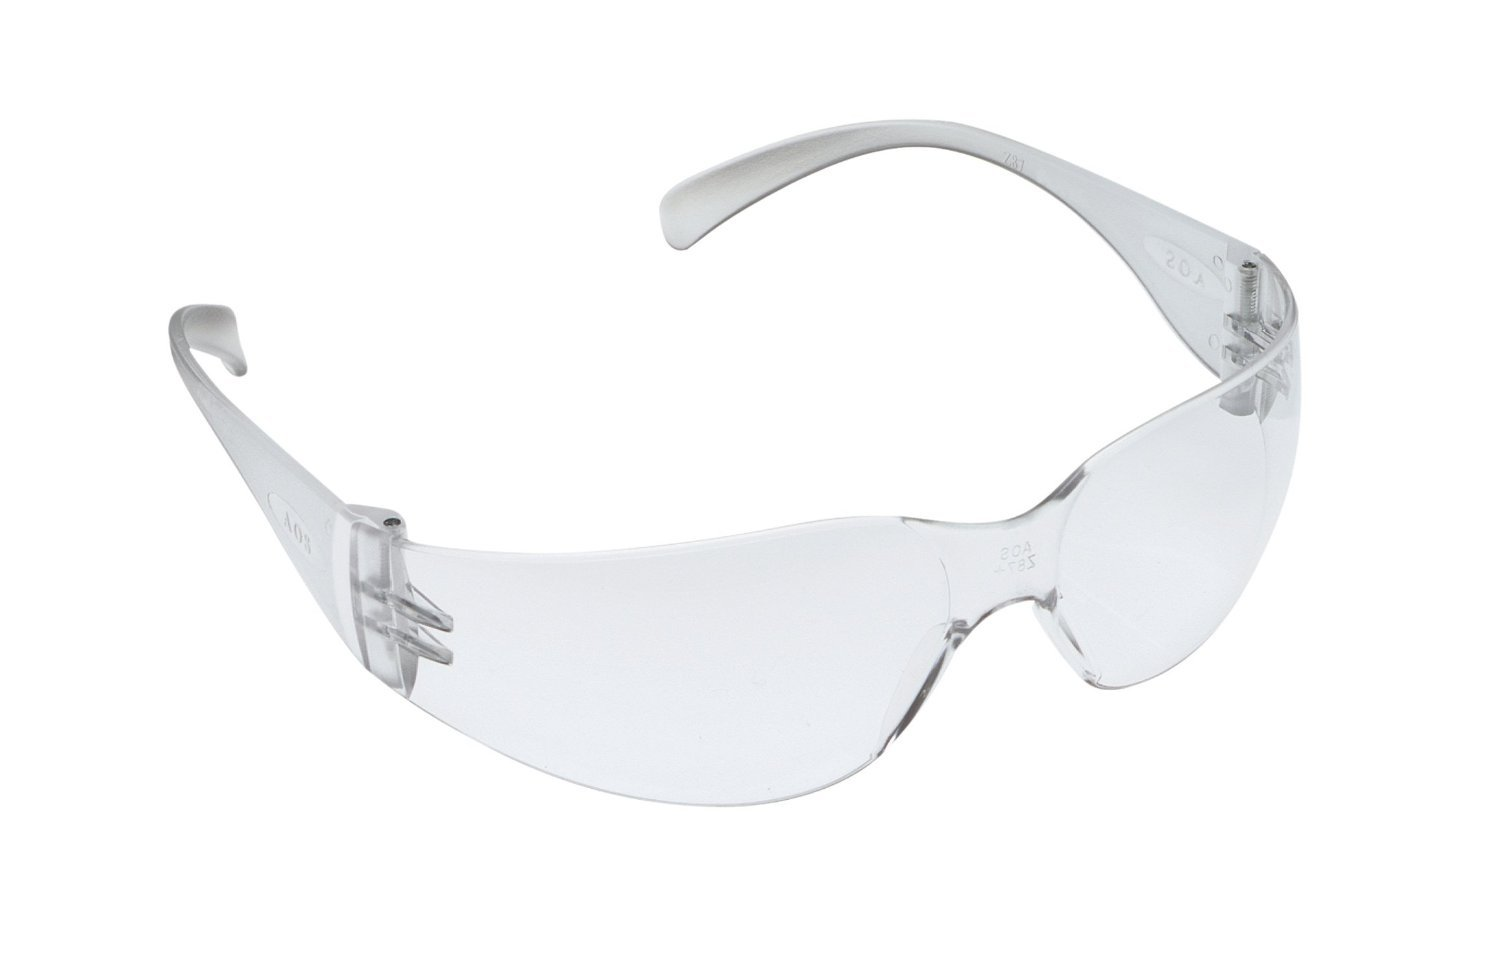 3M 11329-00000-20 Virtua Anti-Fog Safety Glasses, Clear Frame and Lens, 20-Pack